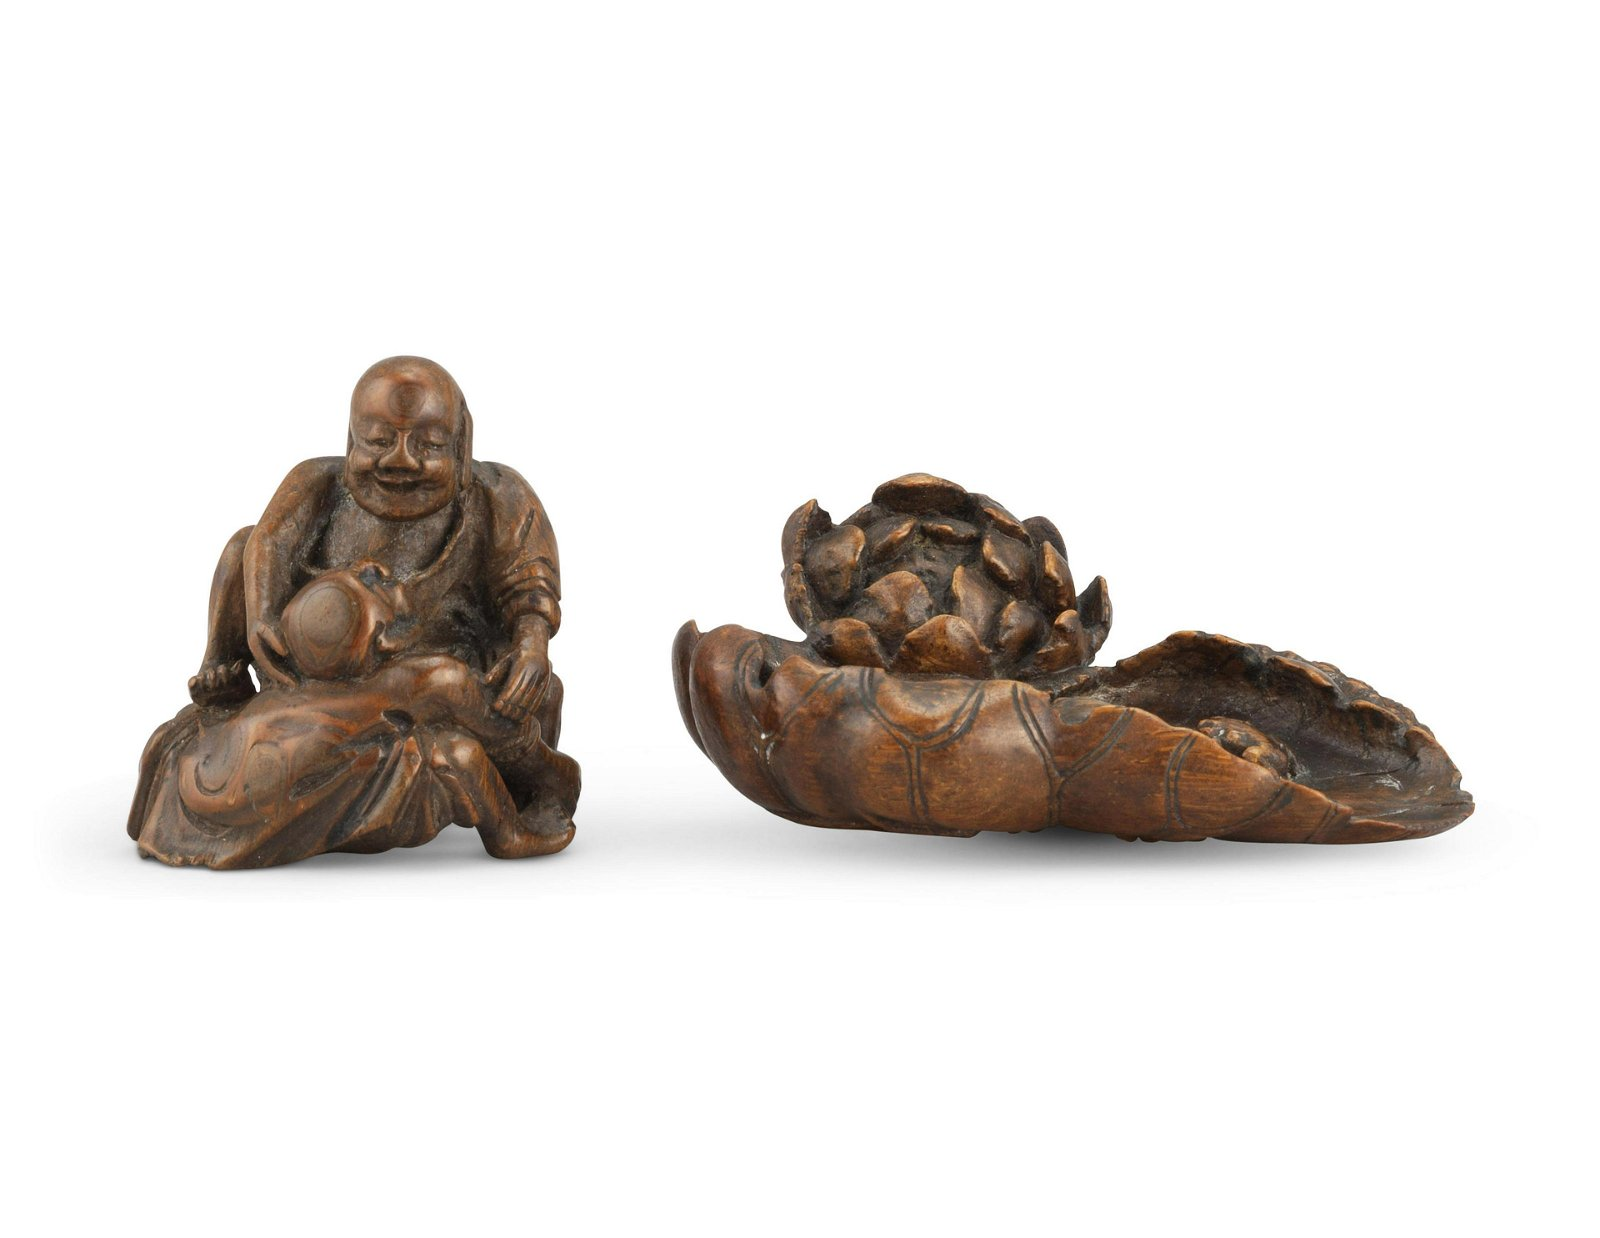 A SMALL BAMBOO CARVING OF WRESTLERS AND A 'FROG AND